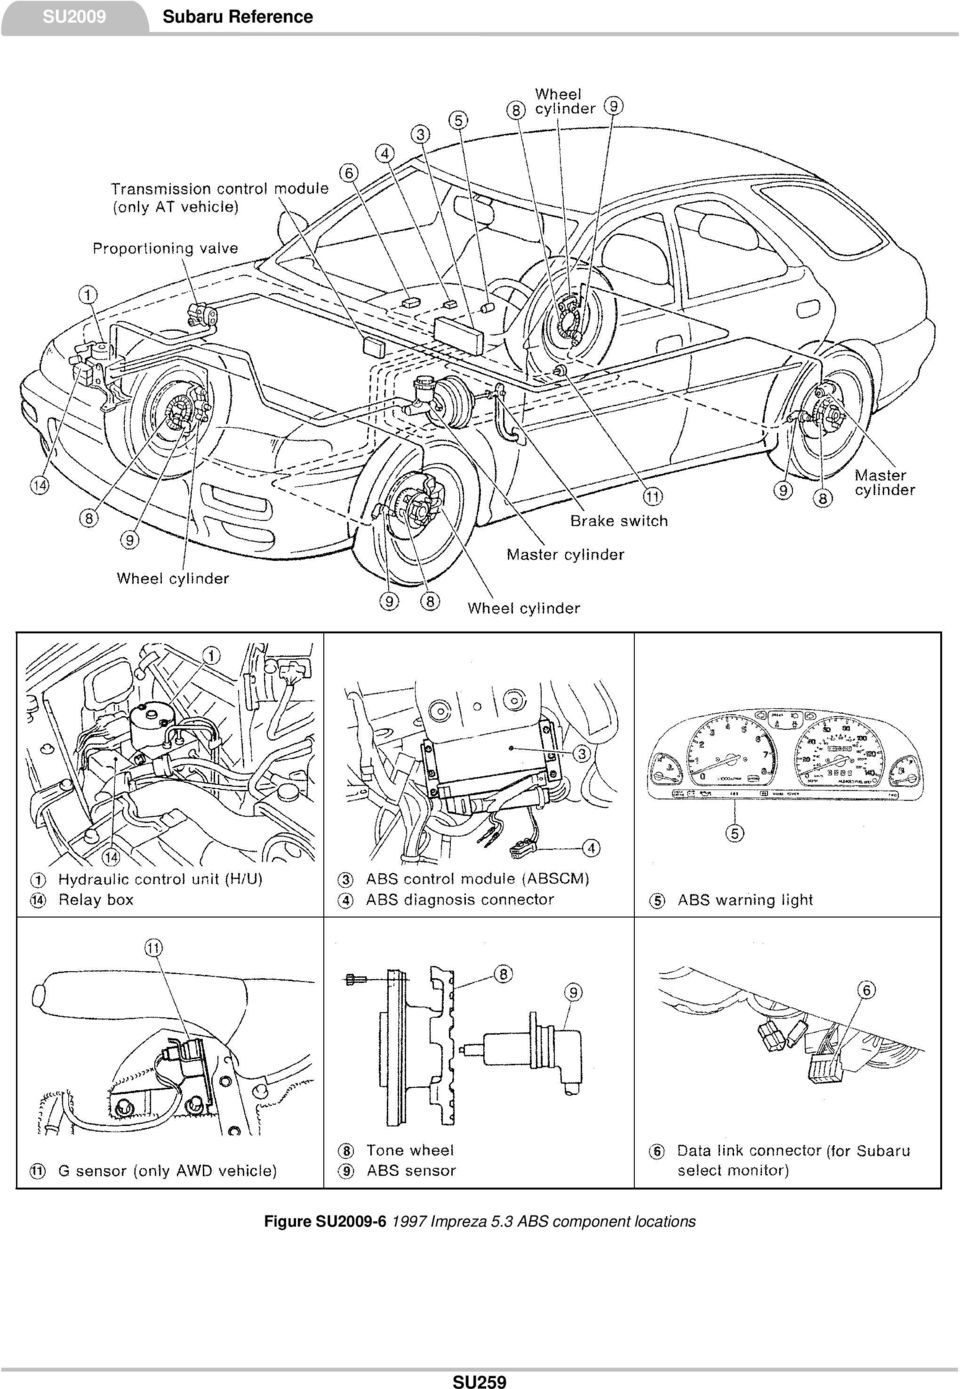 19 Figure SU Impreza 5.3i ABS wiring diagram (sheet 1 of 2) SU260